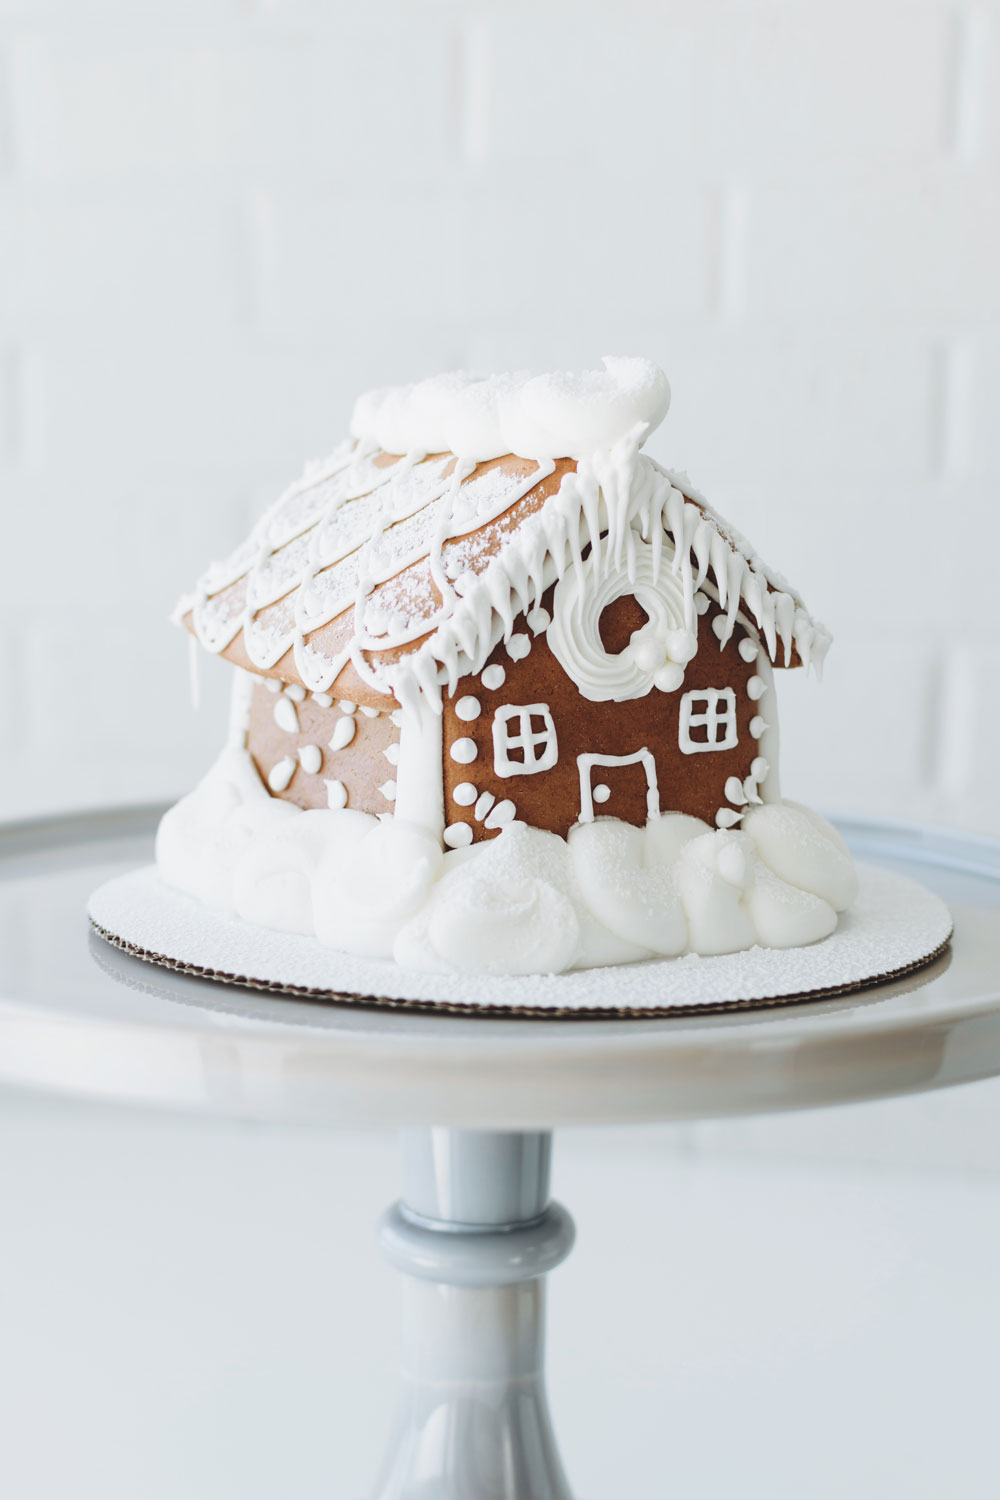 SNOW-CAPPED GINGERBREAD HOUSE - classic gingerbread decorated with icing and powdered sugarsmall 3.5